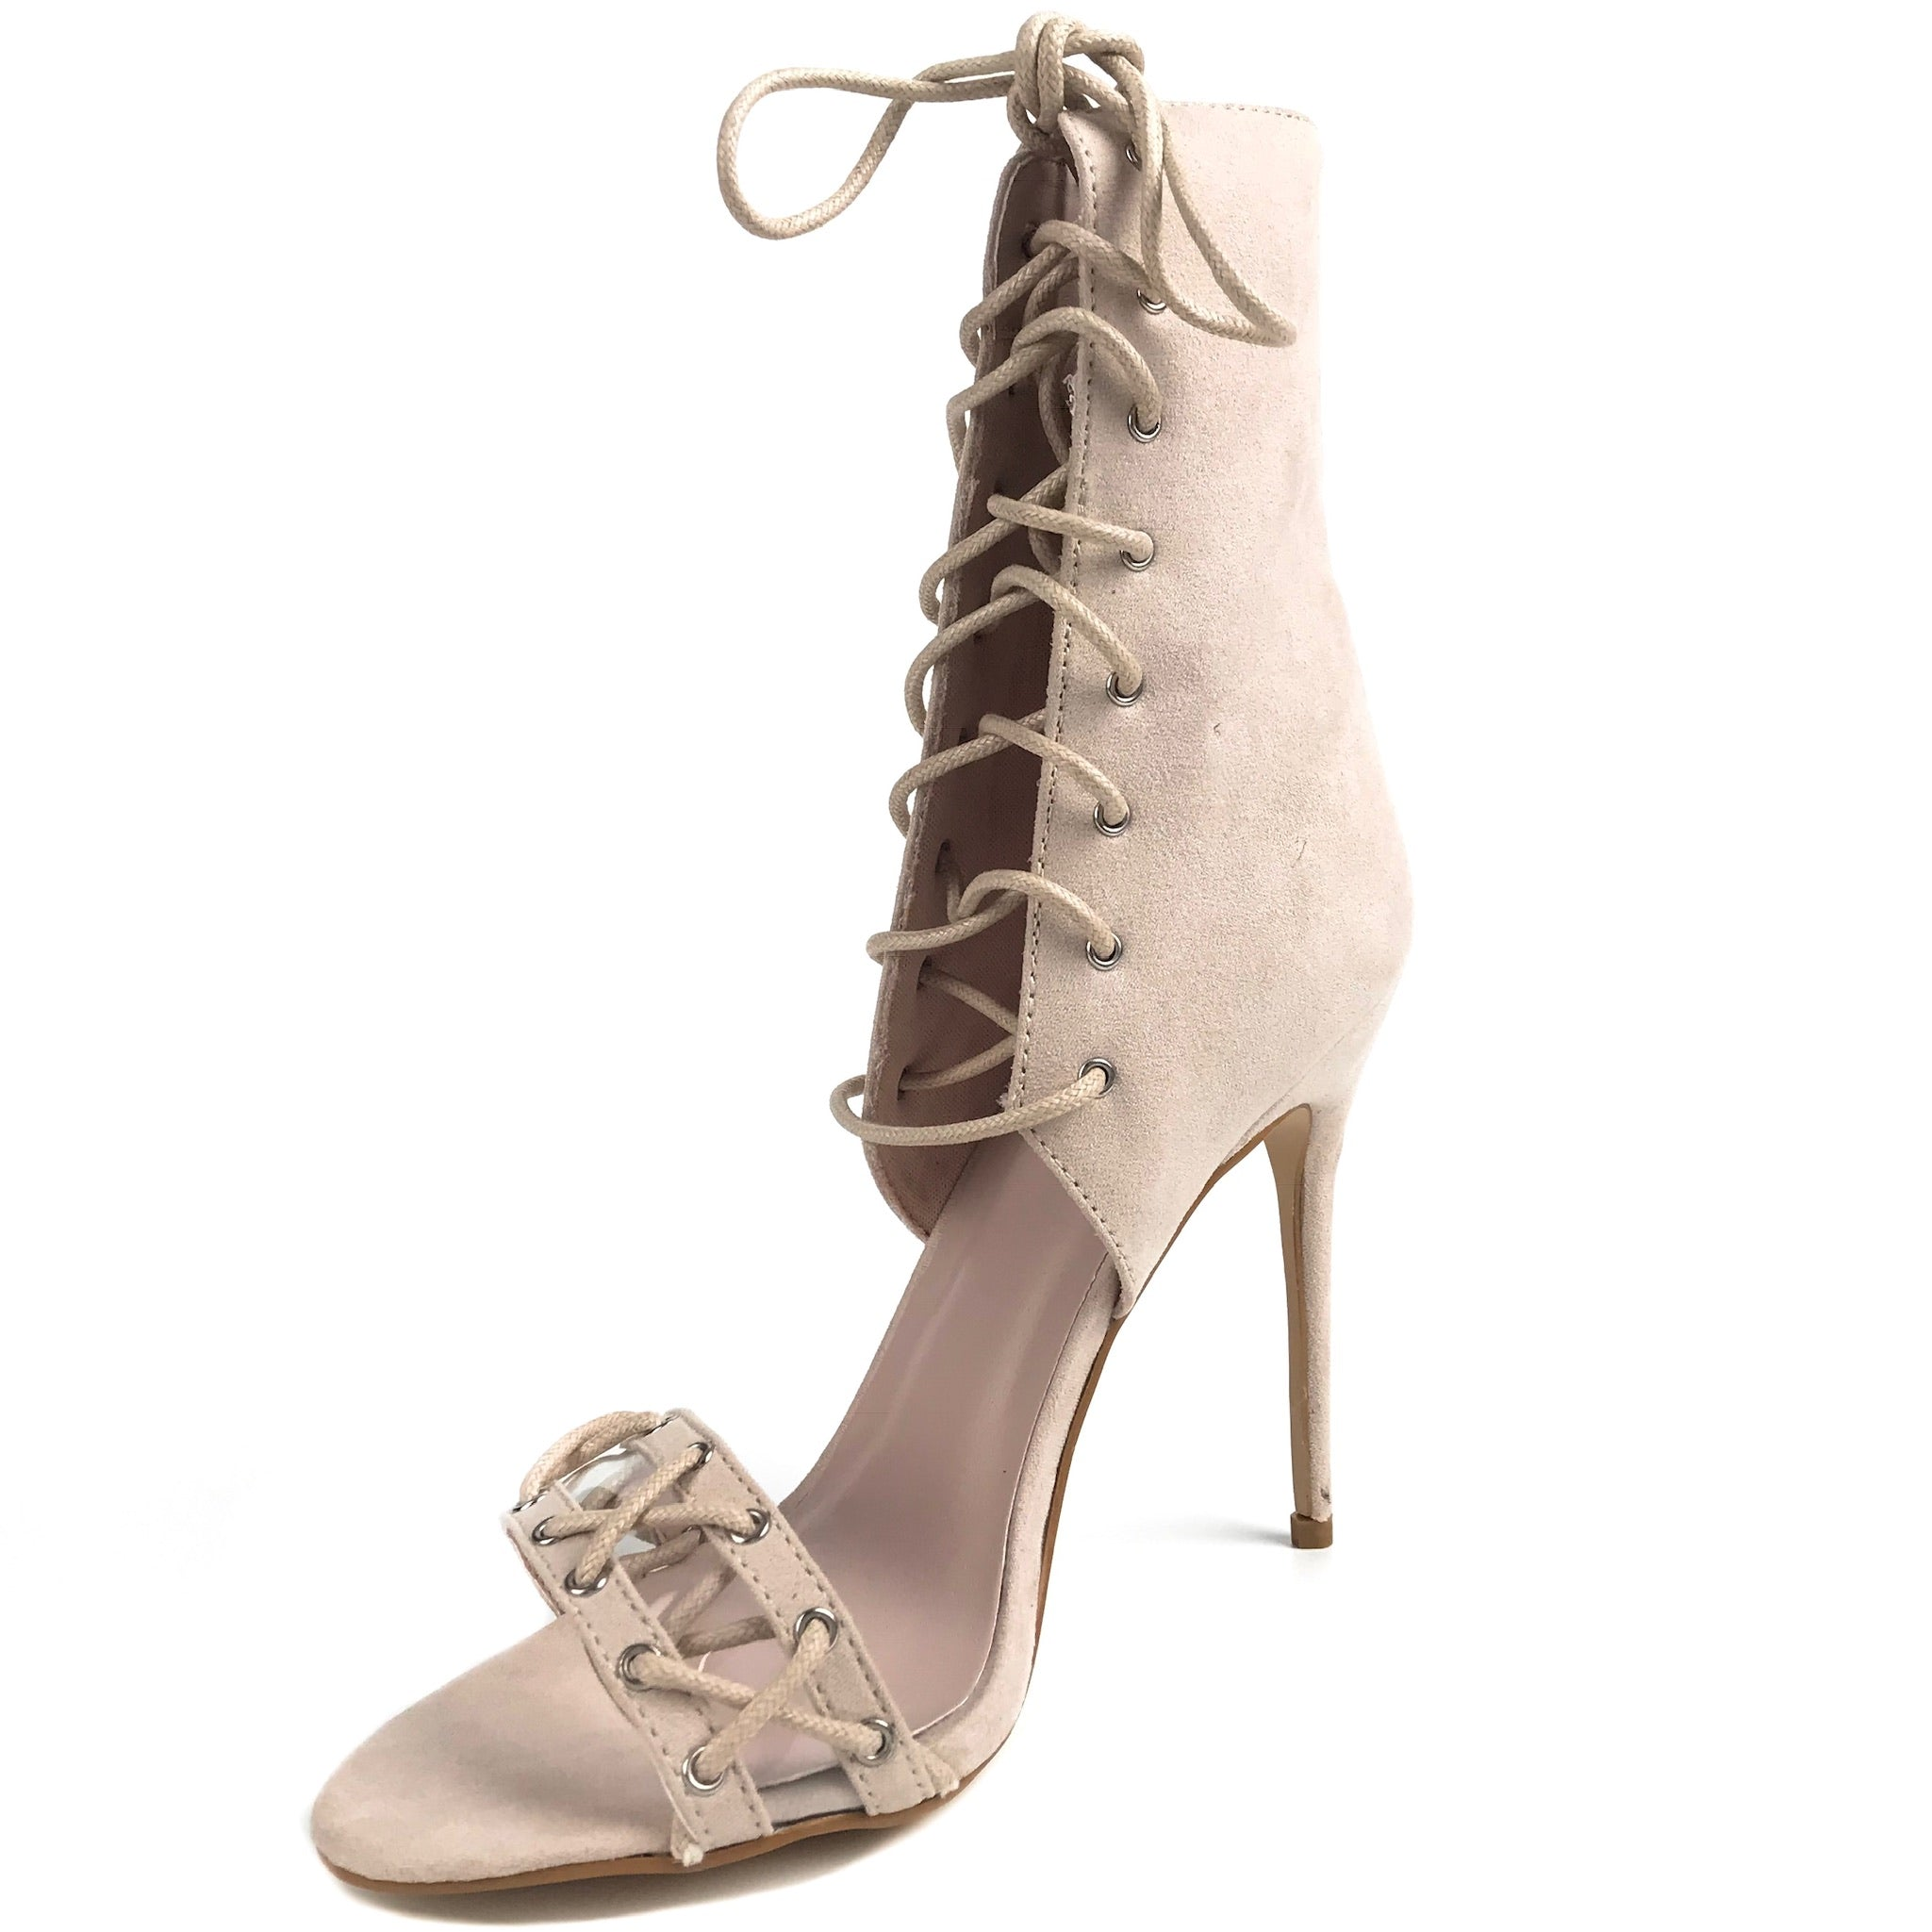 1a37baa54bf65 Izabella Suede Look Nude Strappy Heels – The Iconic USA